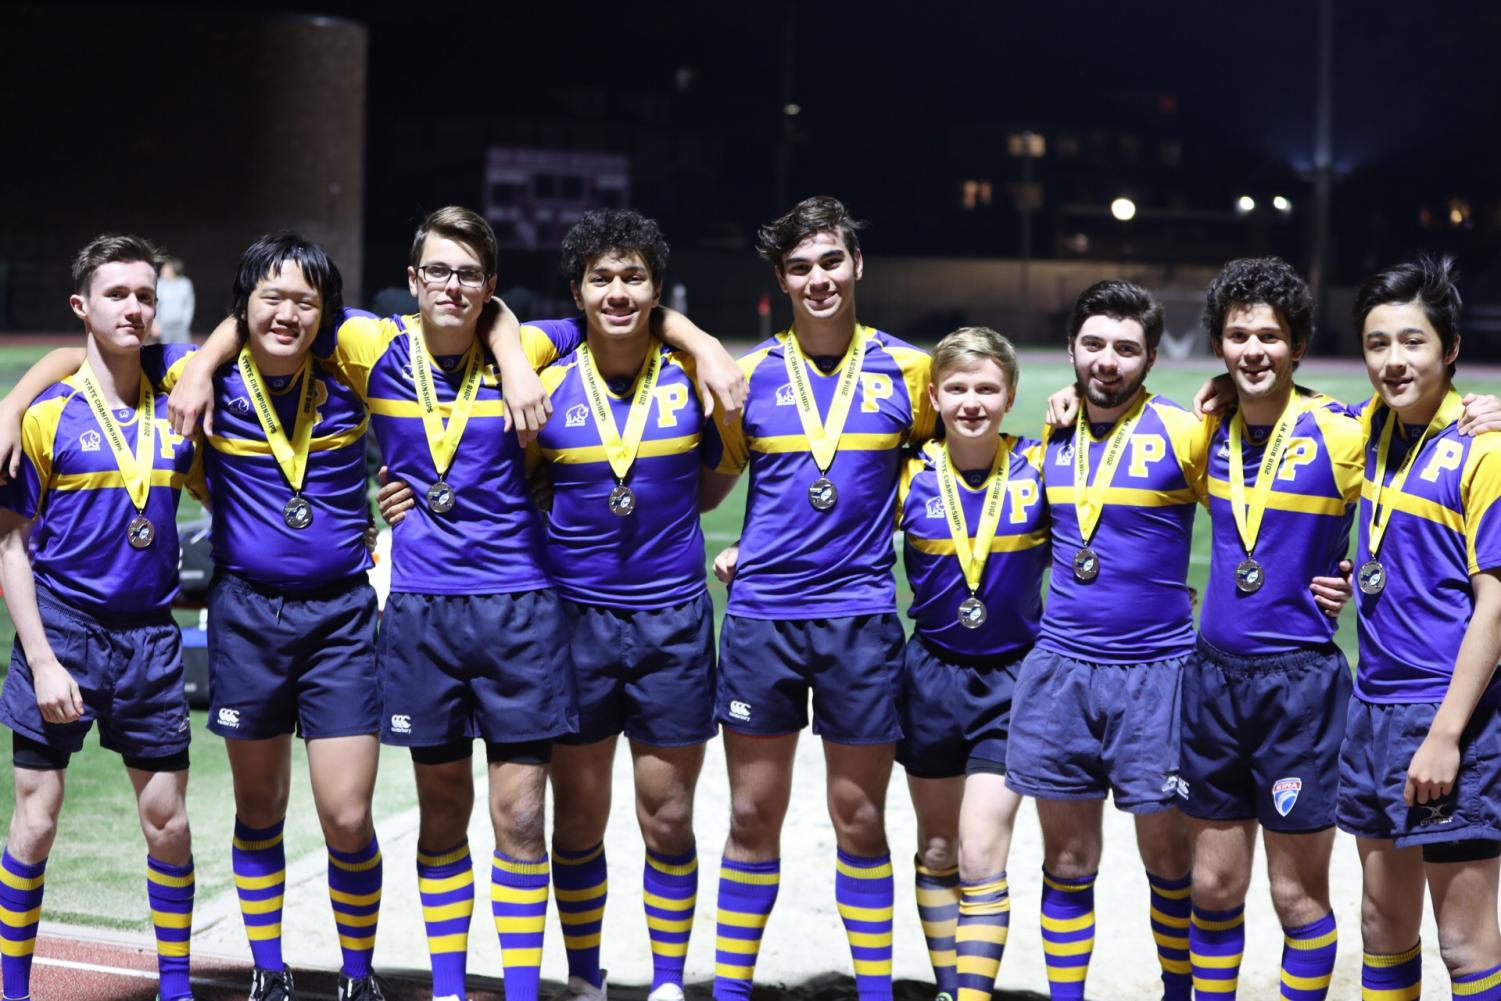 Pelham varsity rugby 7s with their silver medals.